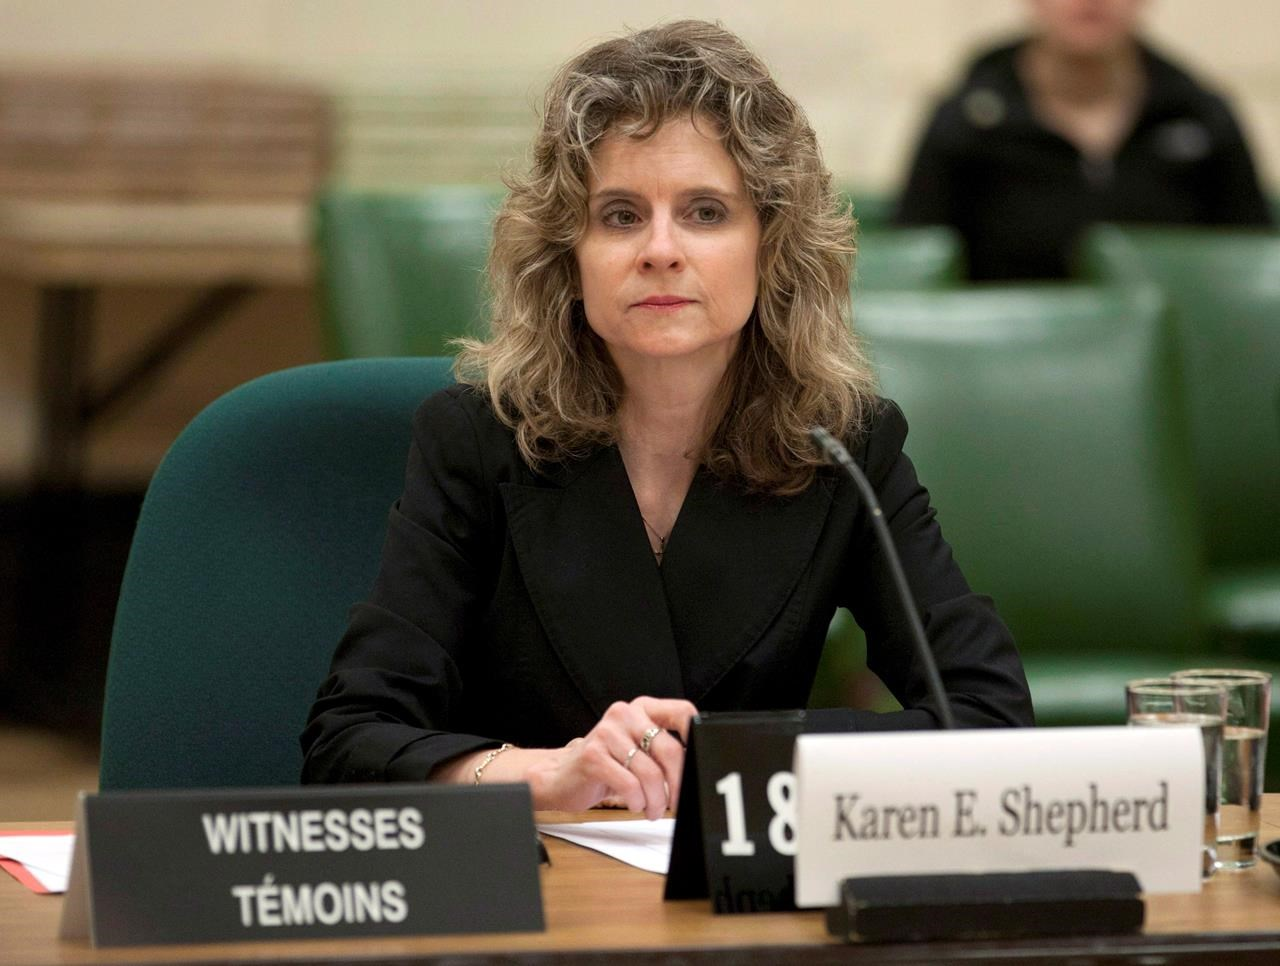 Watchdog to look at Apotex chair fundraiser, Democracy Watch